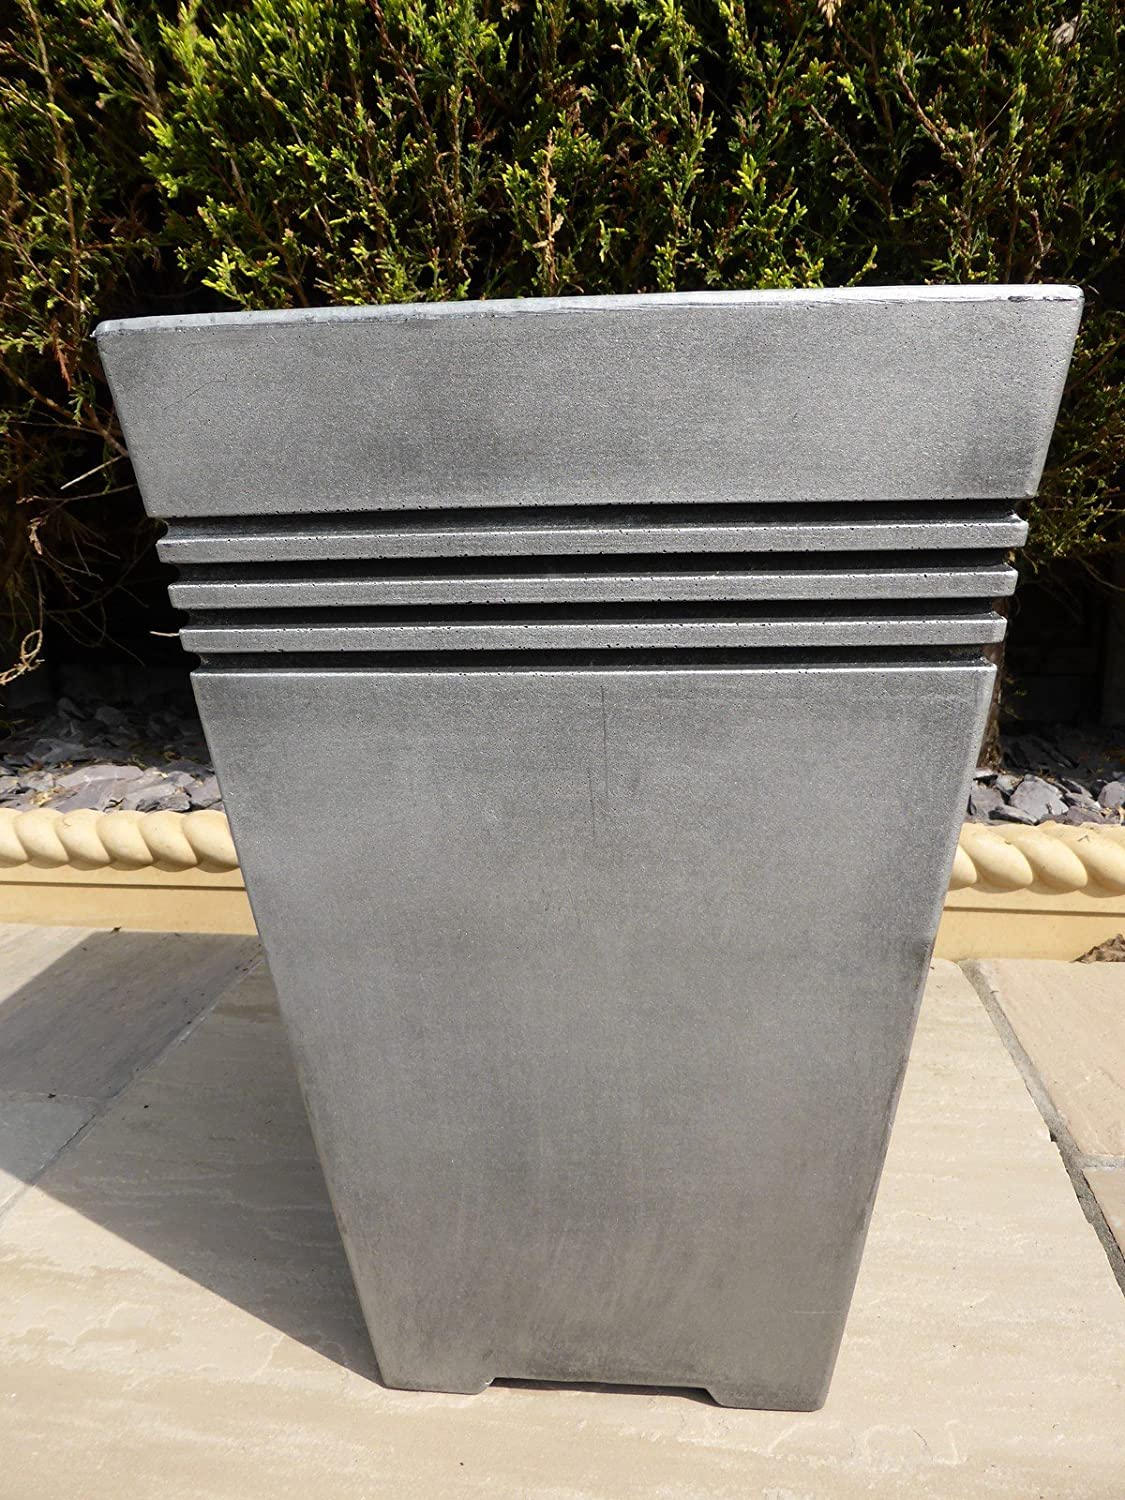 Large Plastic Planters Uk Part - 31: UK-Gardens Antique Grey Resin Plastic Garden Planters - Tall Large Square  Grey Garden Planter